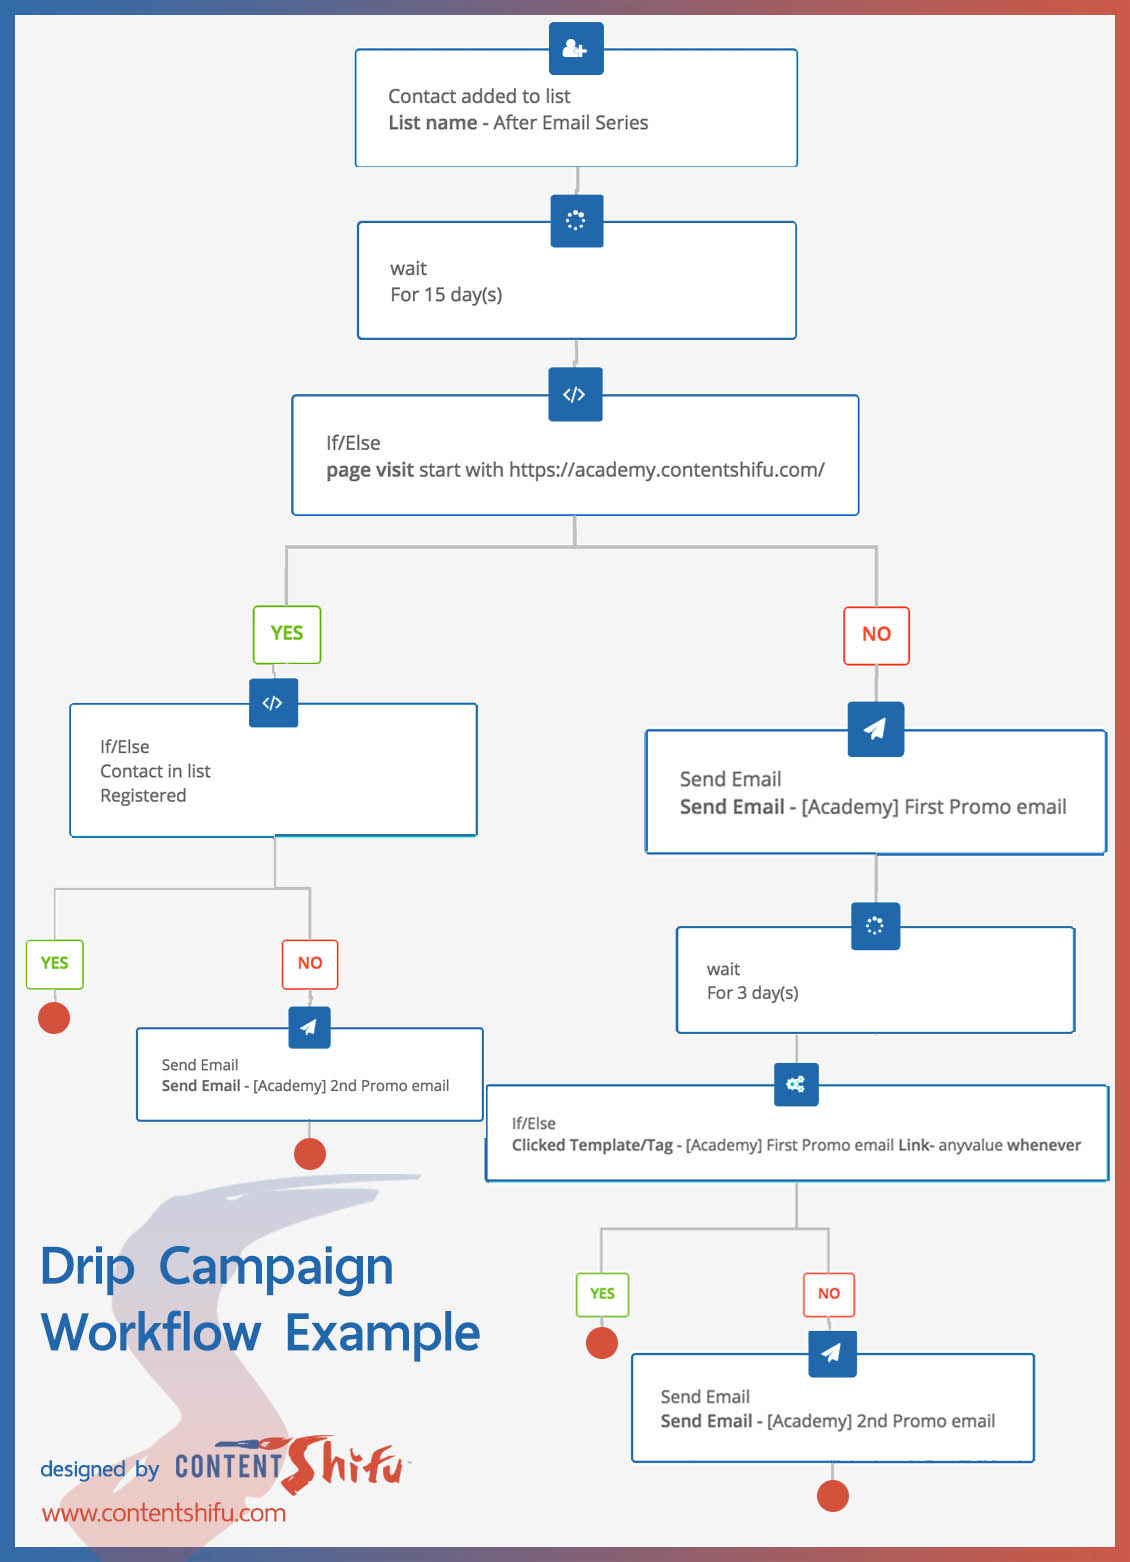 drip campaign workflow content shifu academy